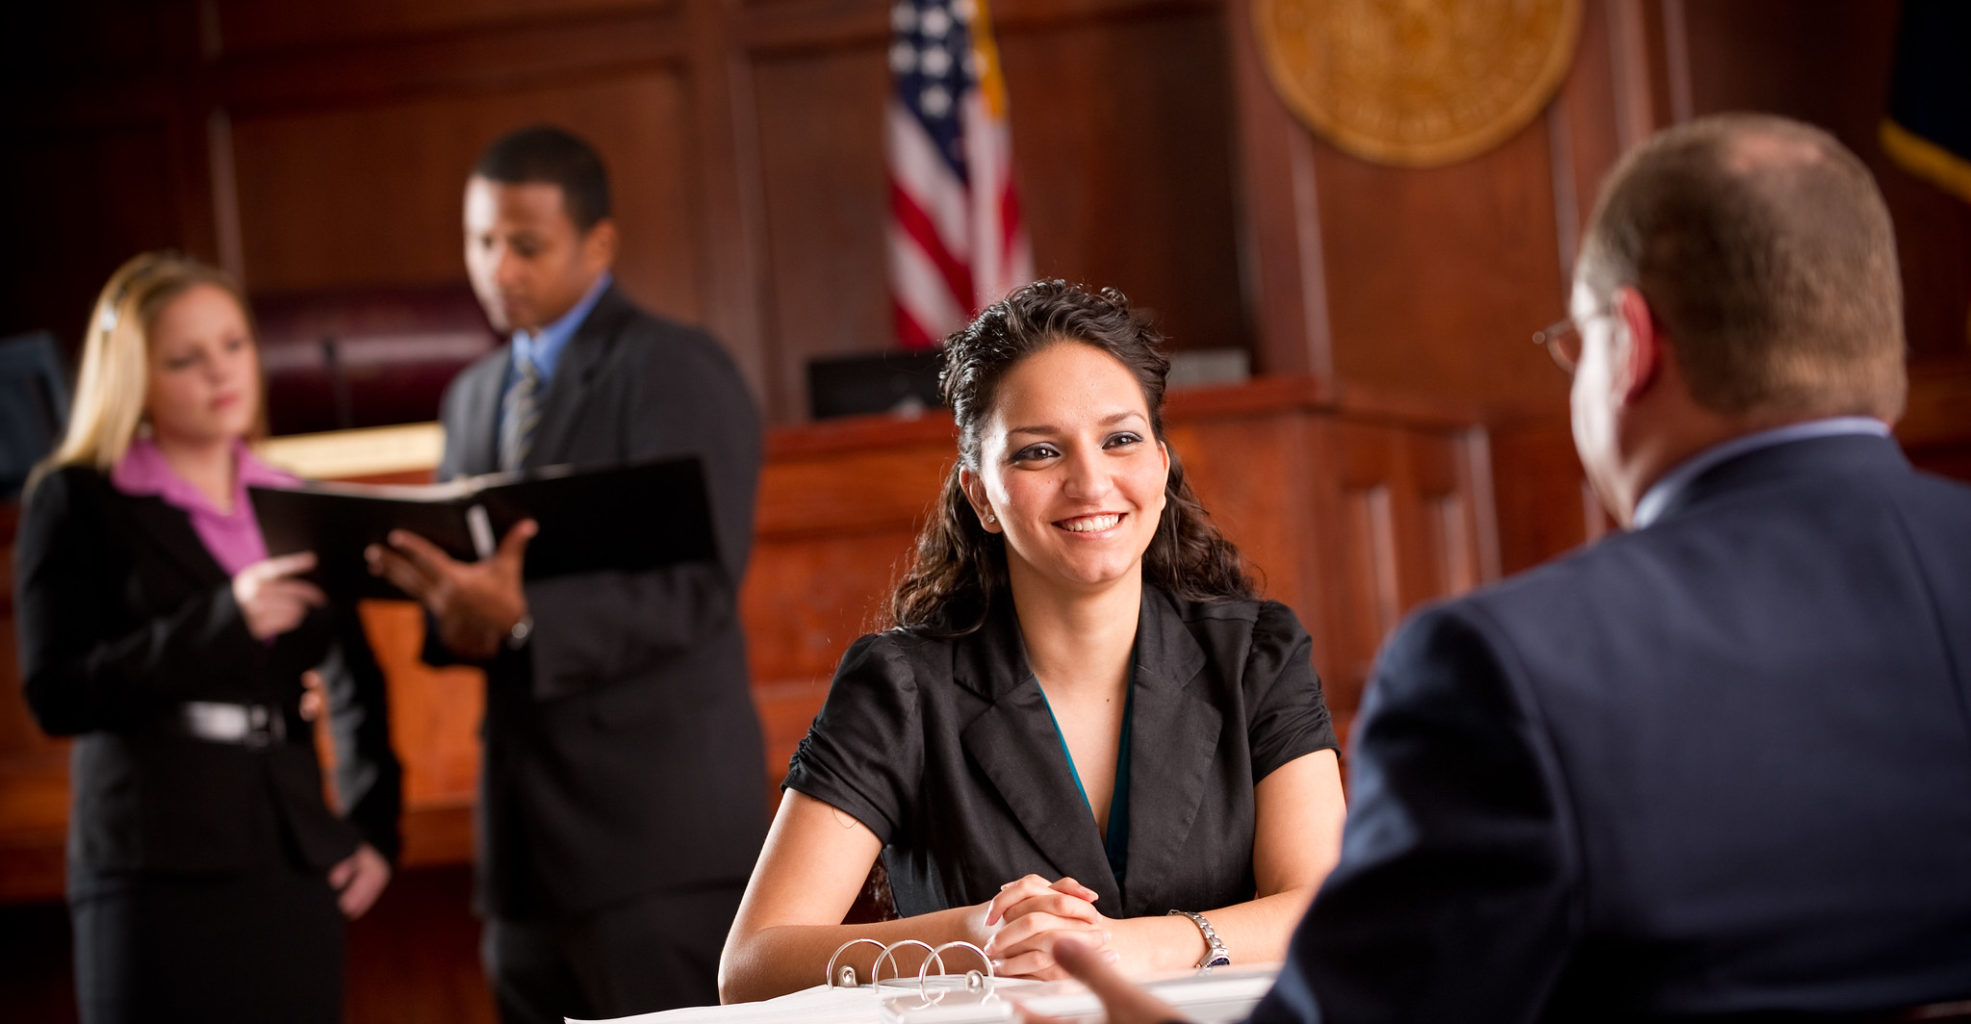 Woman approaching judges desk with individual discussing a case in the background.